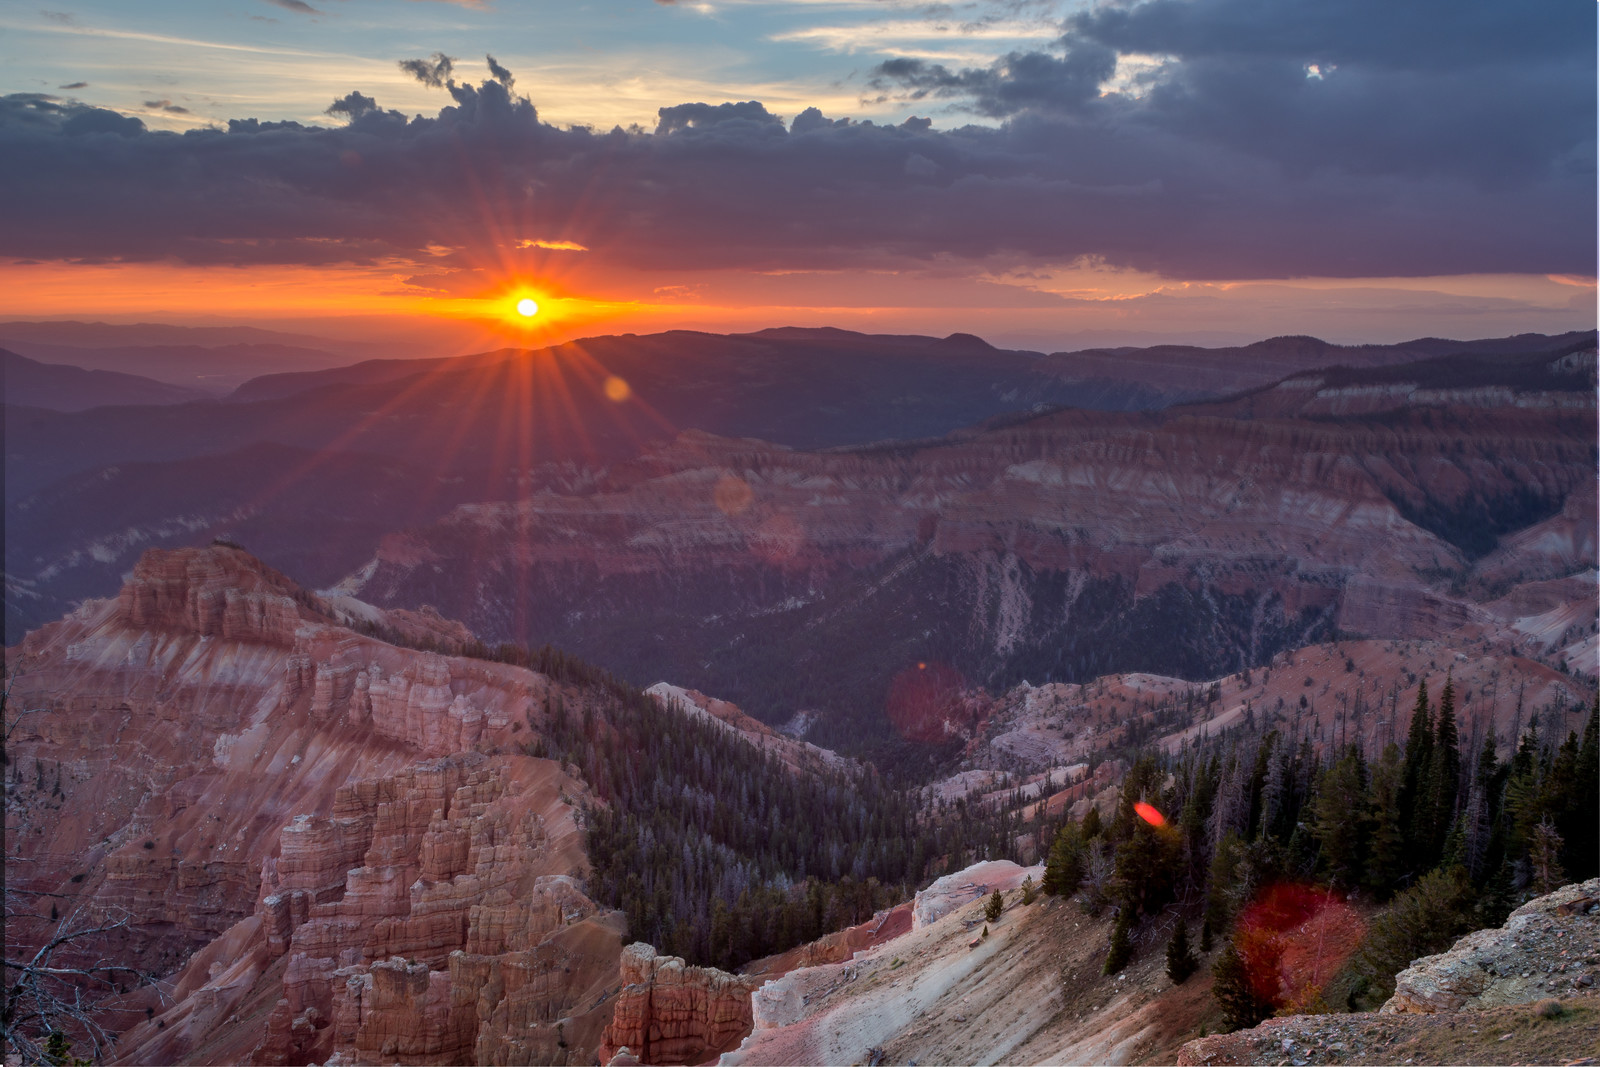 Sunset overlooking cedar breaks national monument with purple skies and evergreens coming down the hills in cedar city, ut.